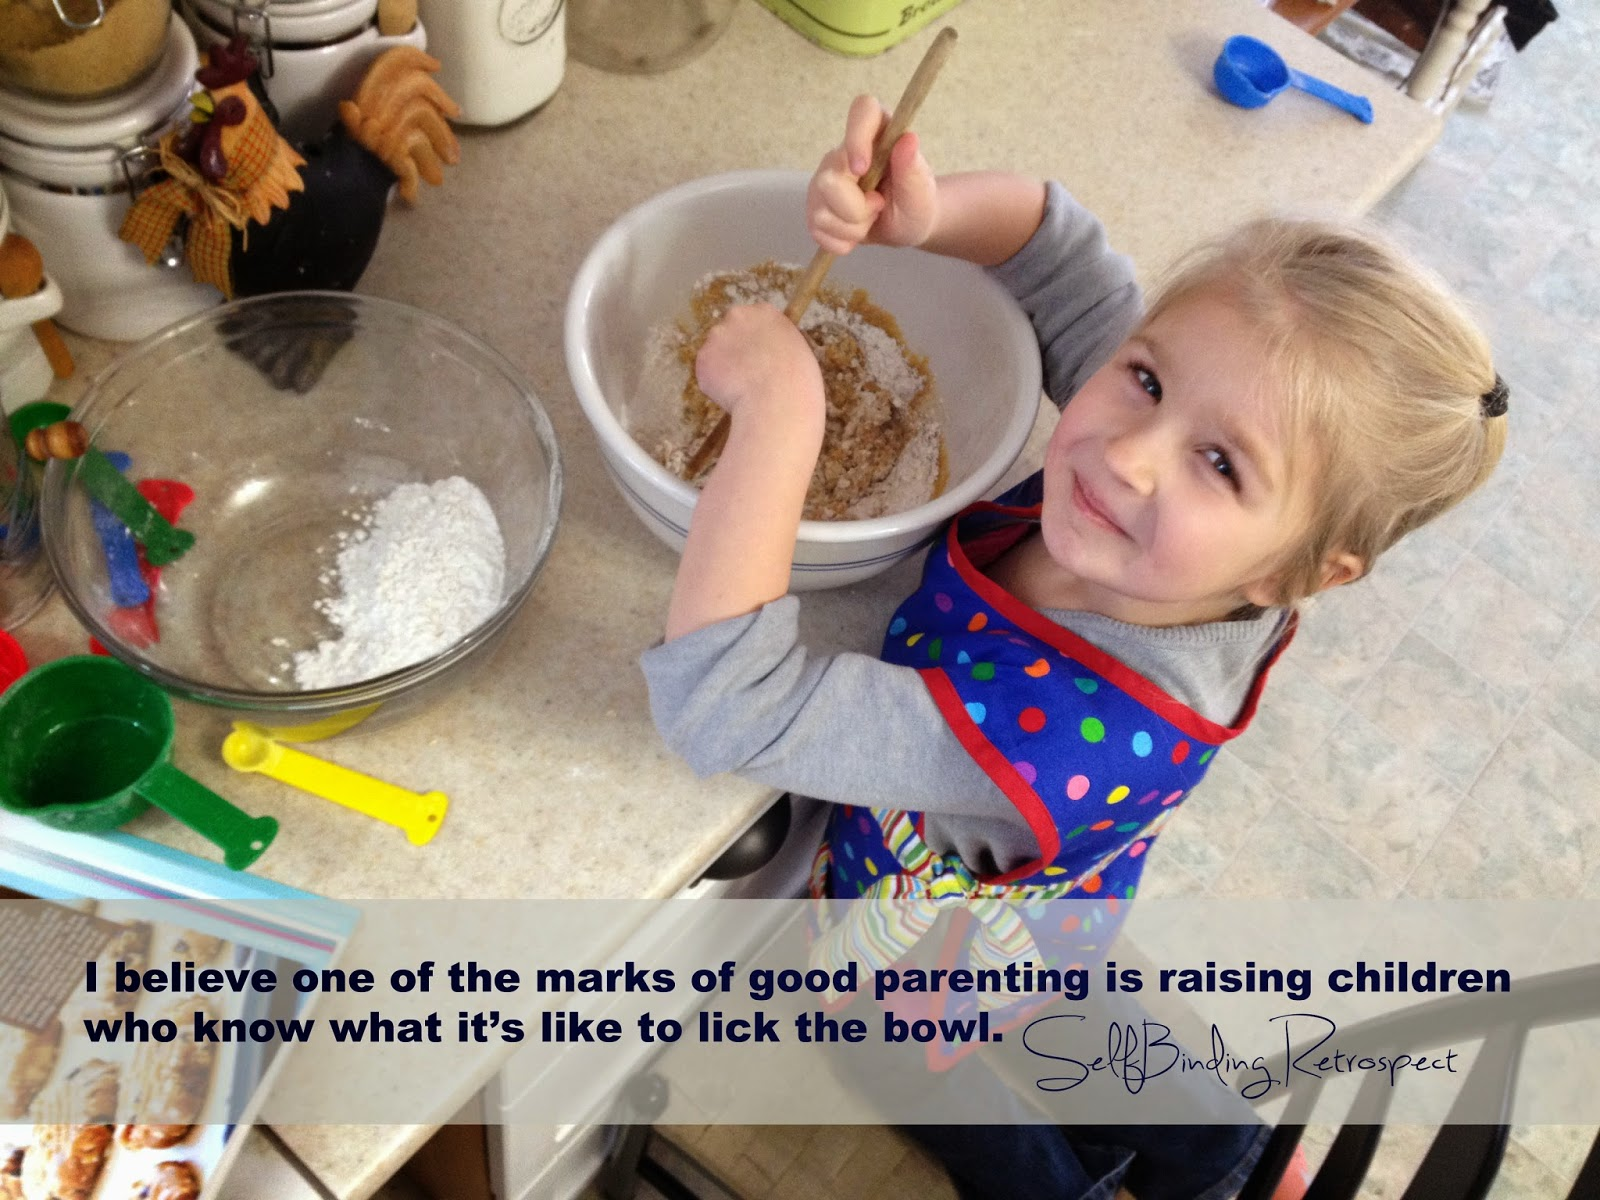 I believe one of the marks of good parenting is raising children who know what it's like to lick the bowl - SelfBinding Retrospect by Alanna Rusnak